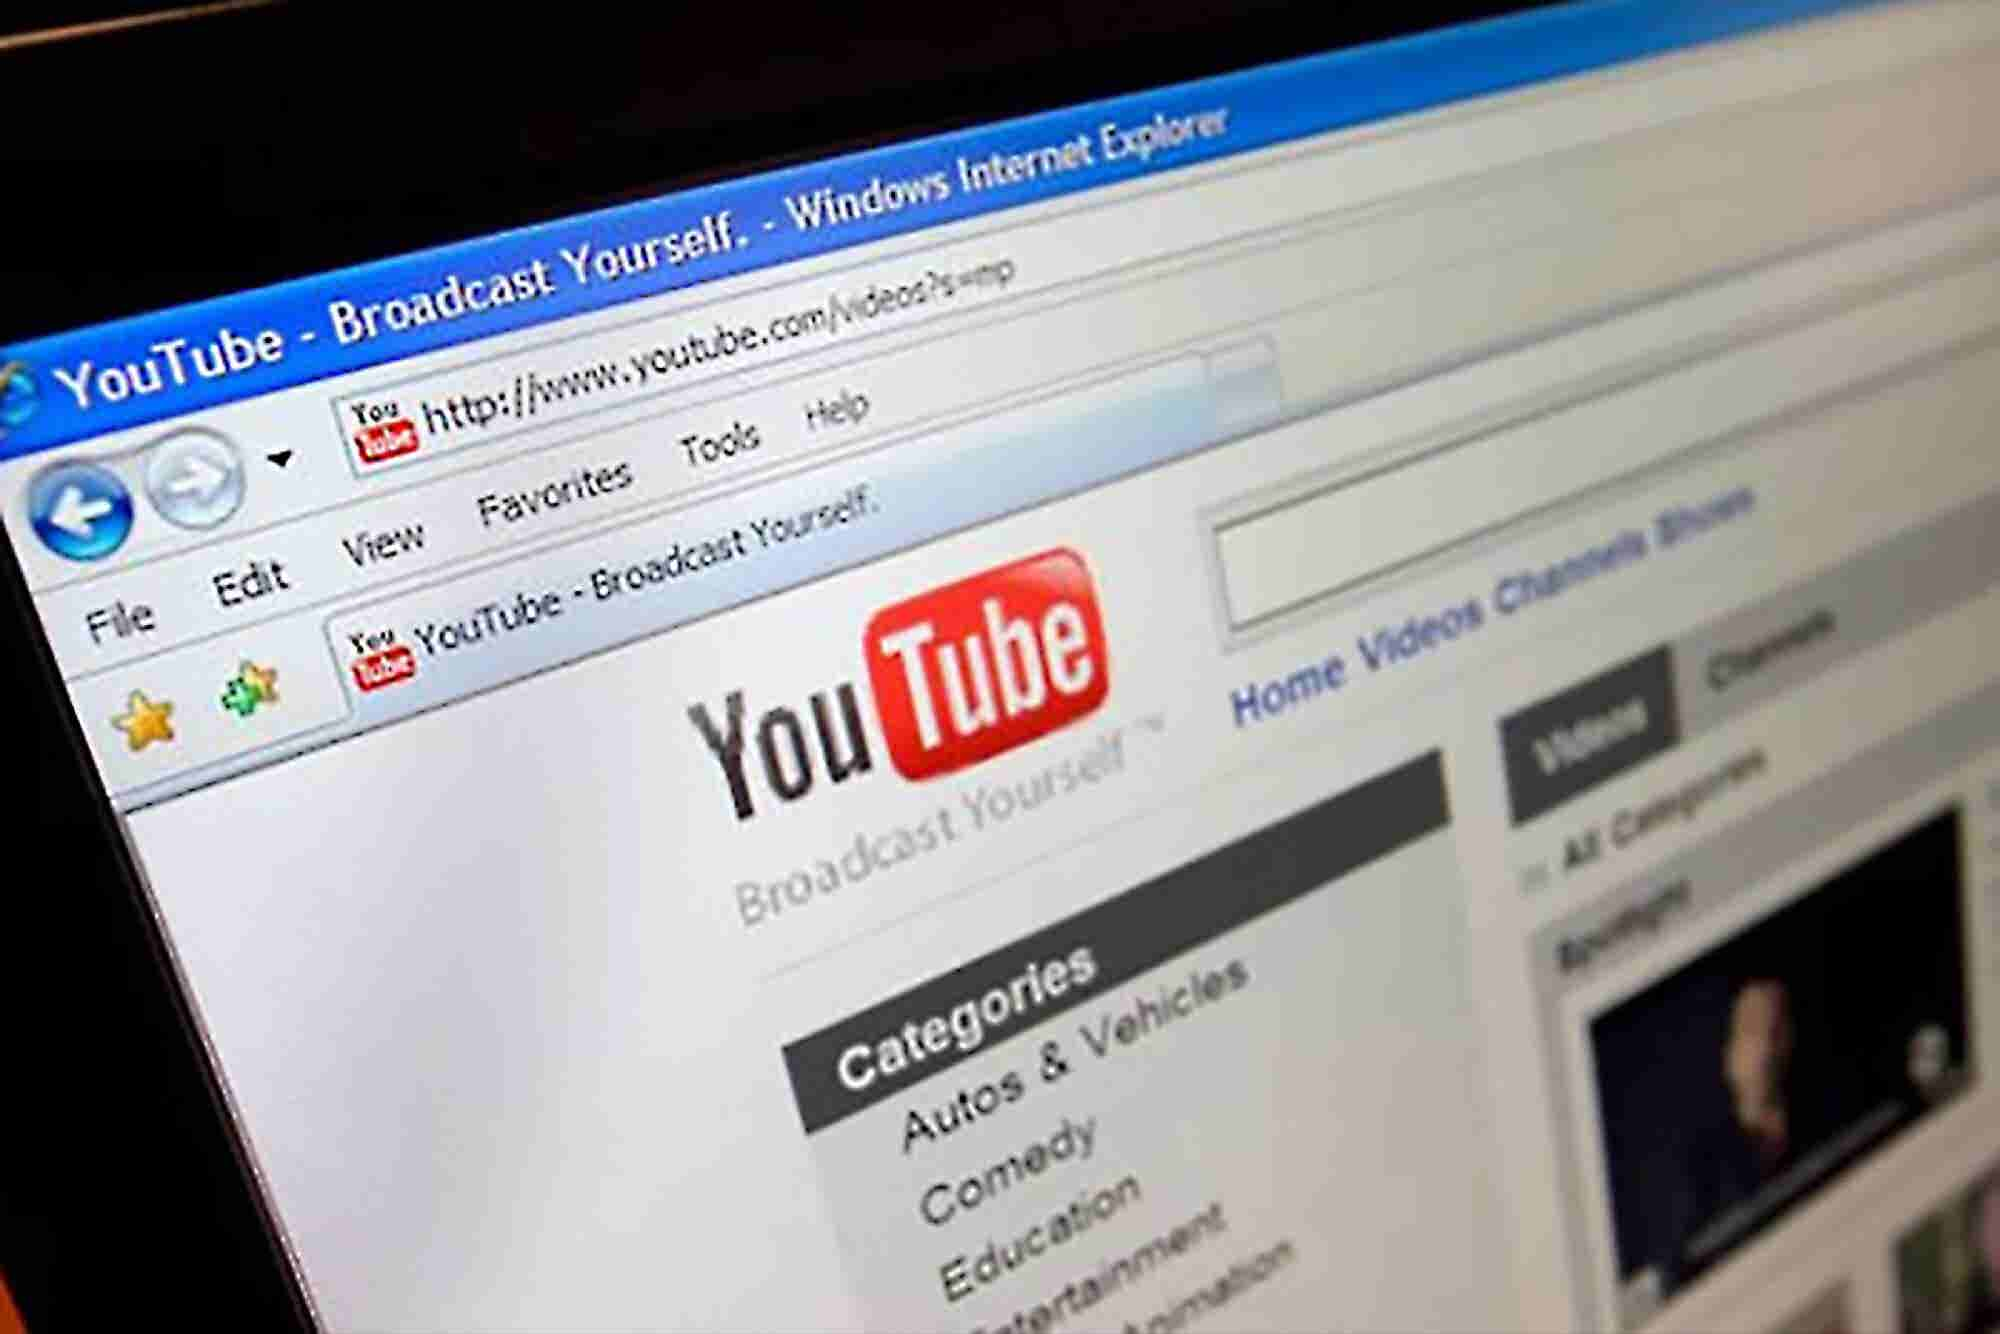 How to Write a Compelling Script for Your YouTube Videos